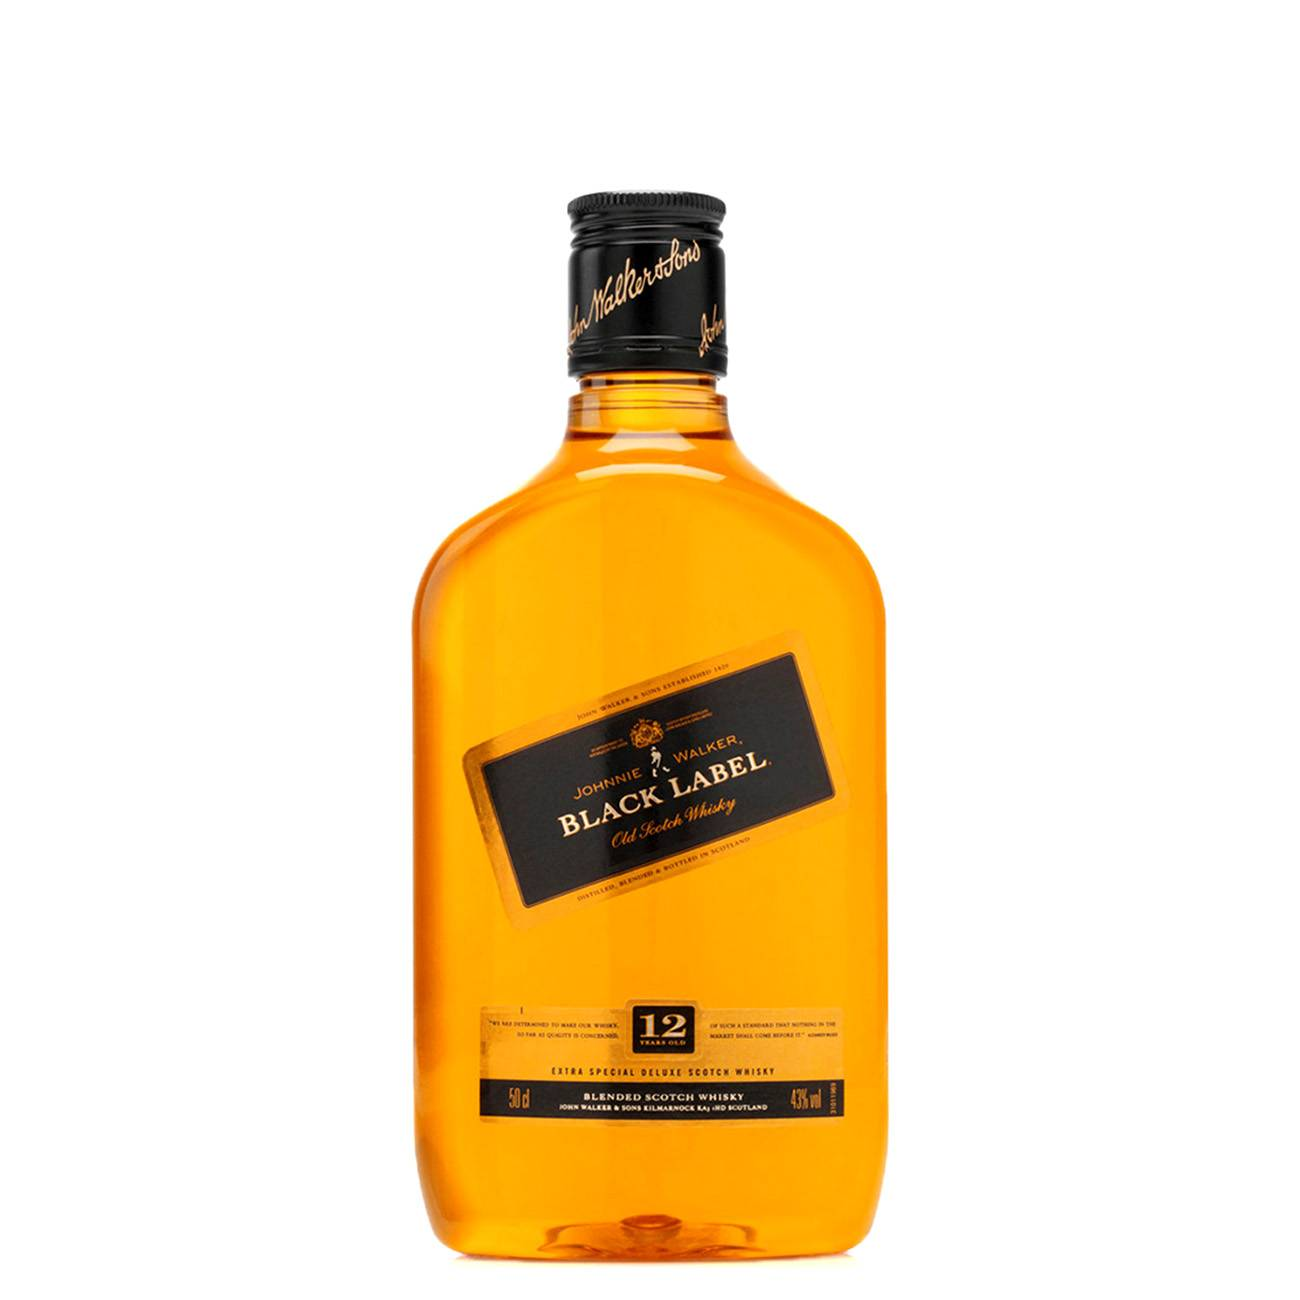 Whisky scotian, BLACK LABEL 12 YEARS OLD 500 ML, Johnnie Walker